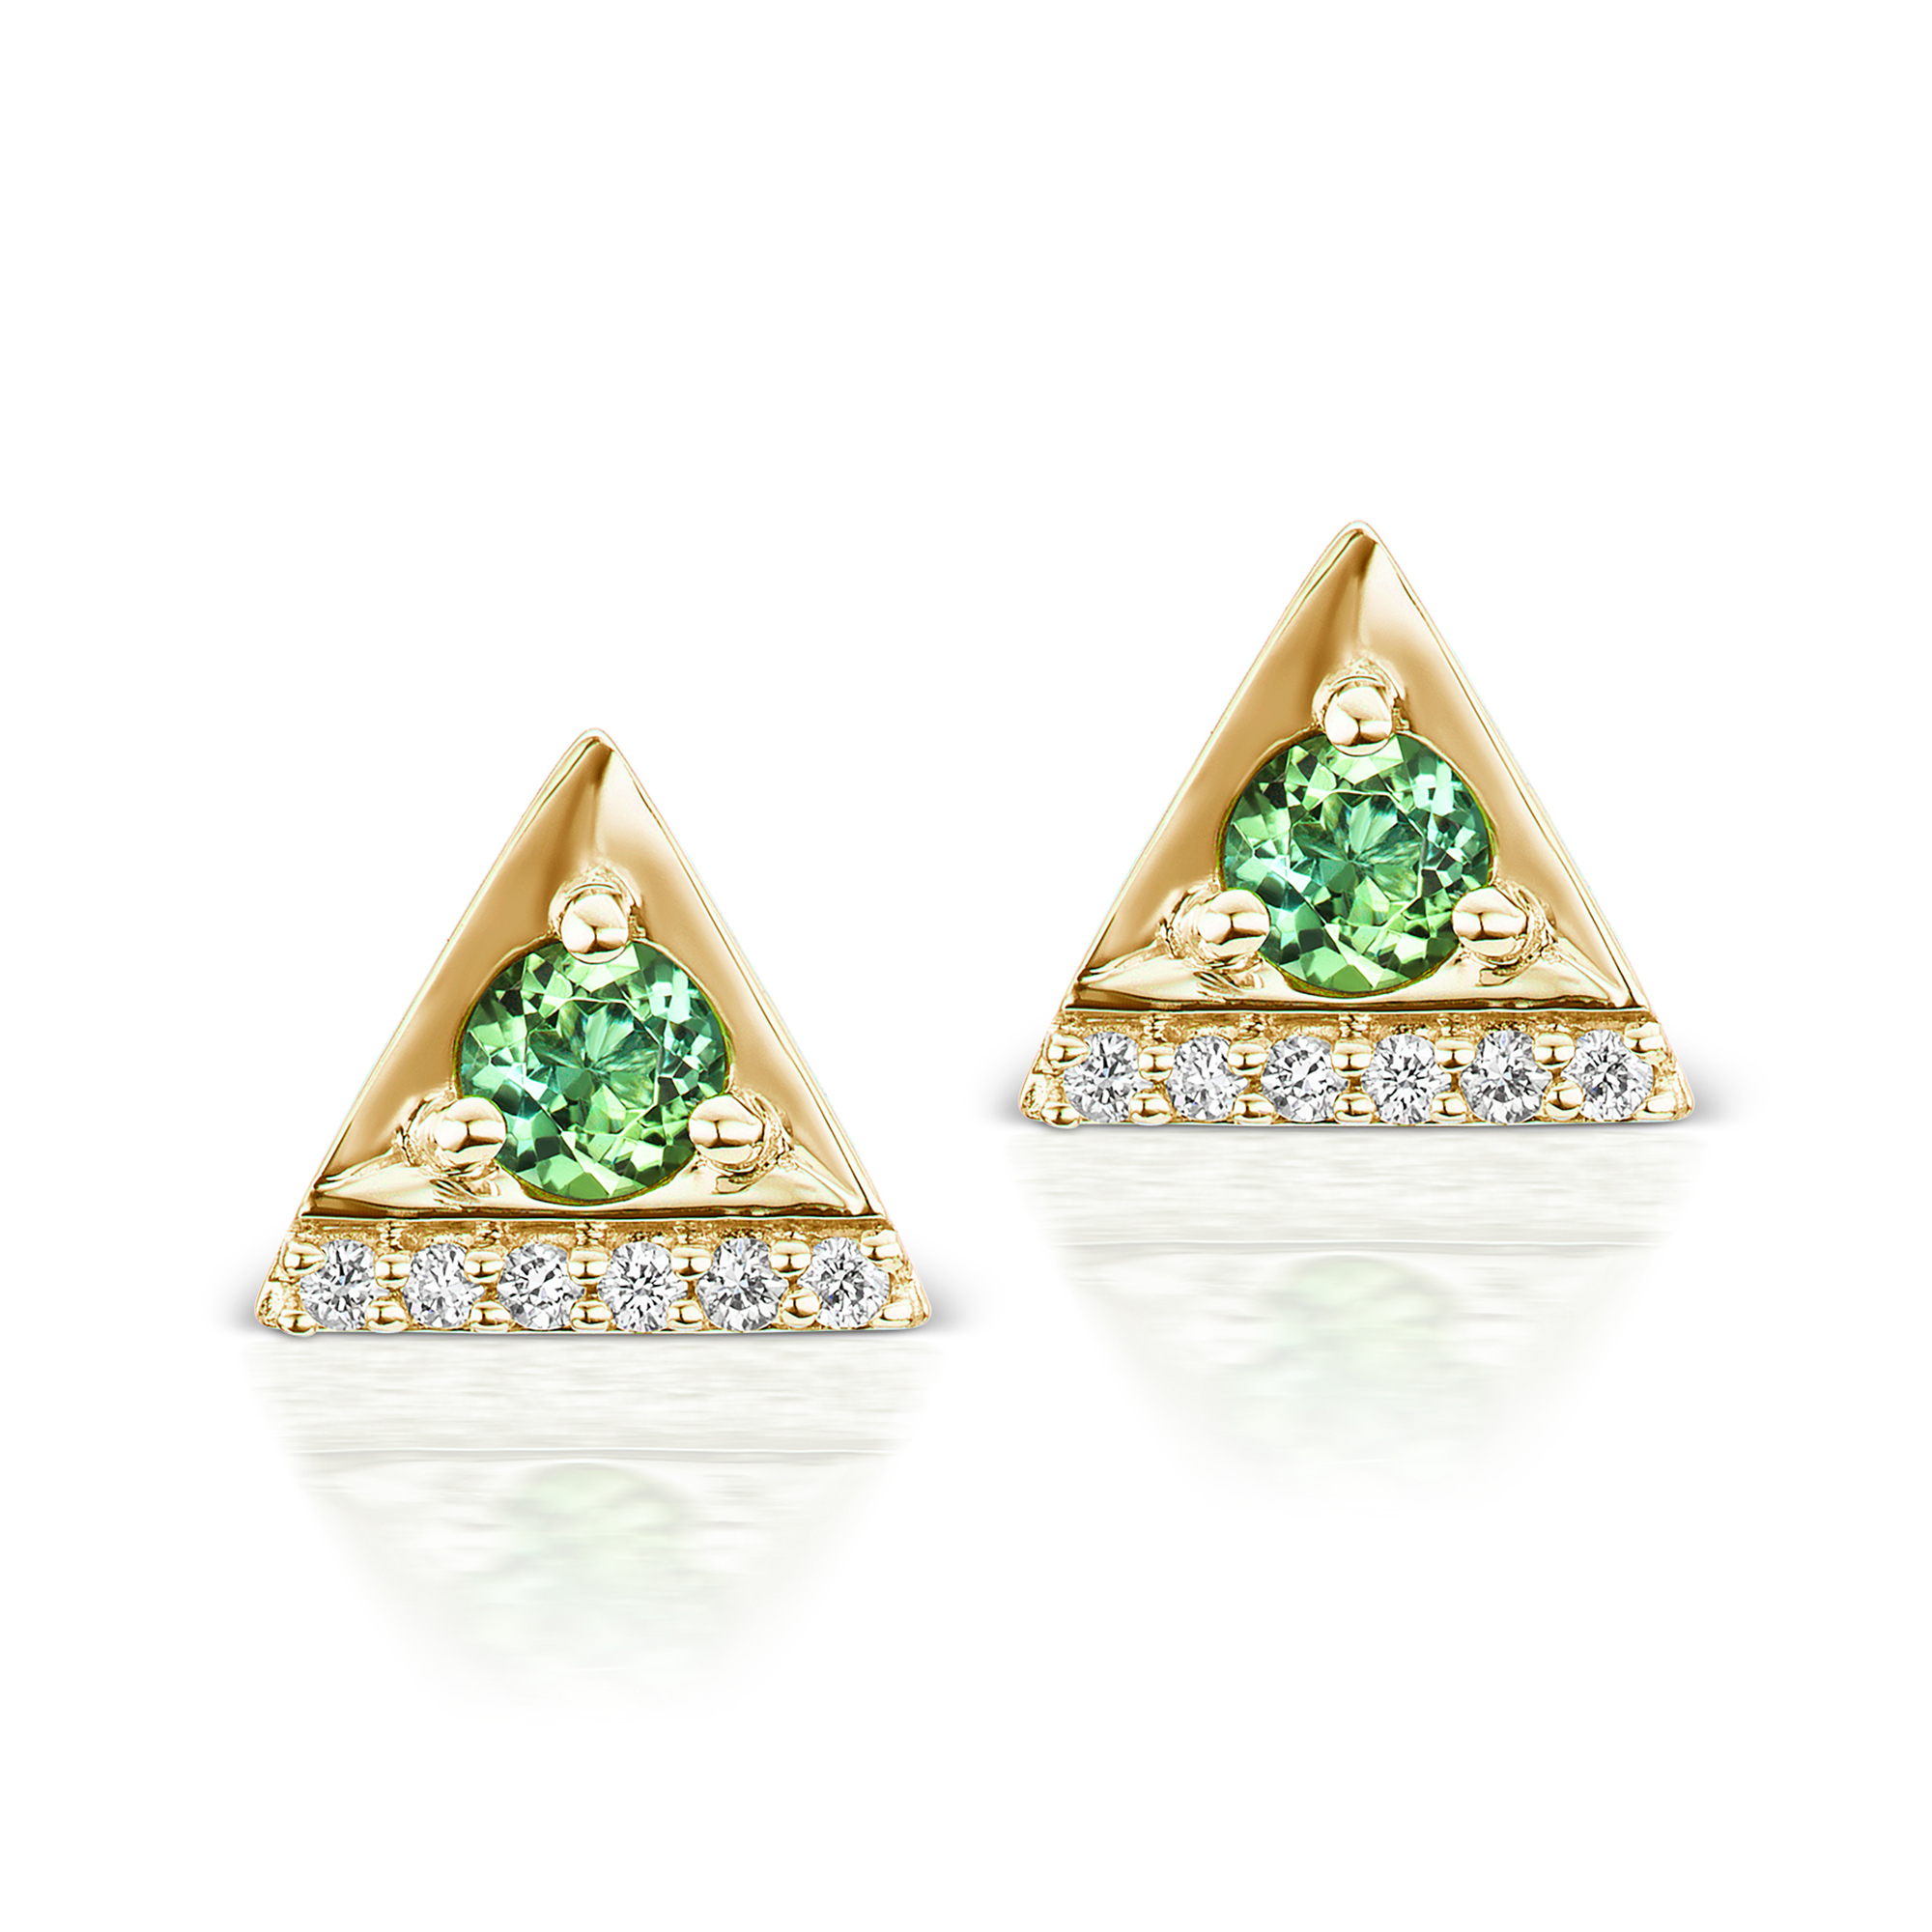 Jane Taylor Tourmaline & Diamond Cirque Triangle Stud Earrings